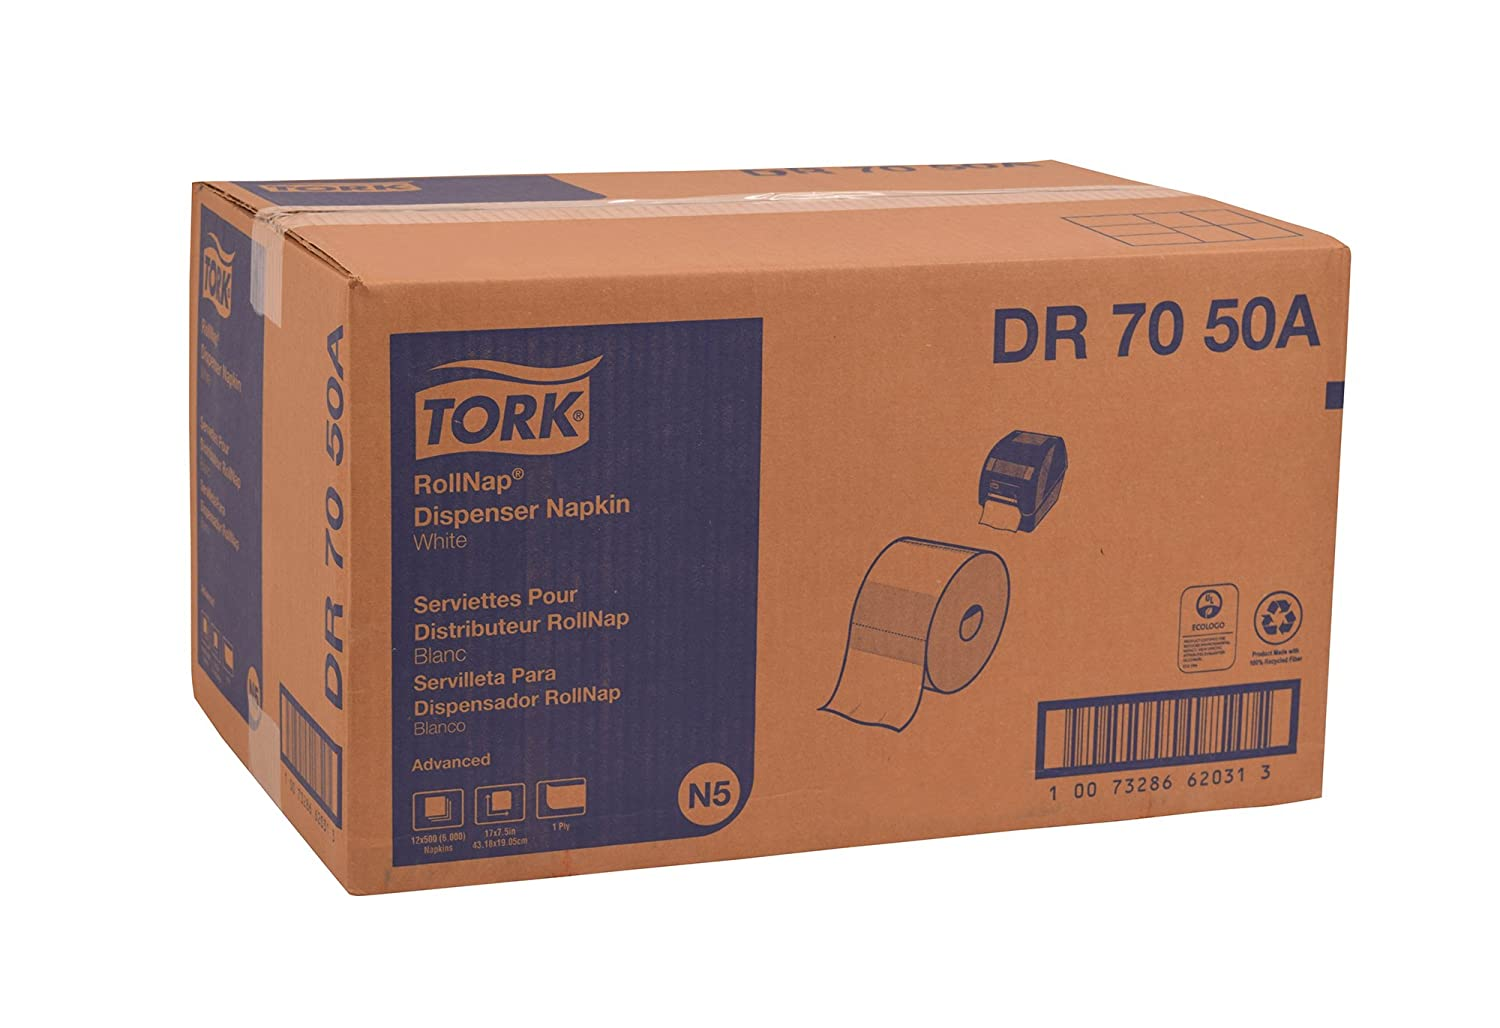 Amazon.com: Tork DR7050A Advanced RollNap Dispenser Napkin, 1-Ply, 7.5